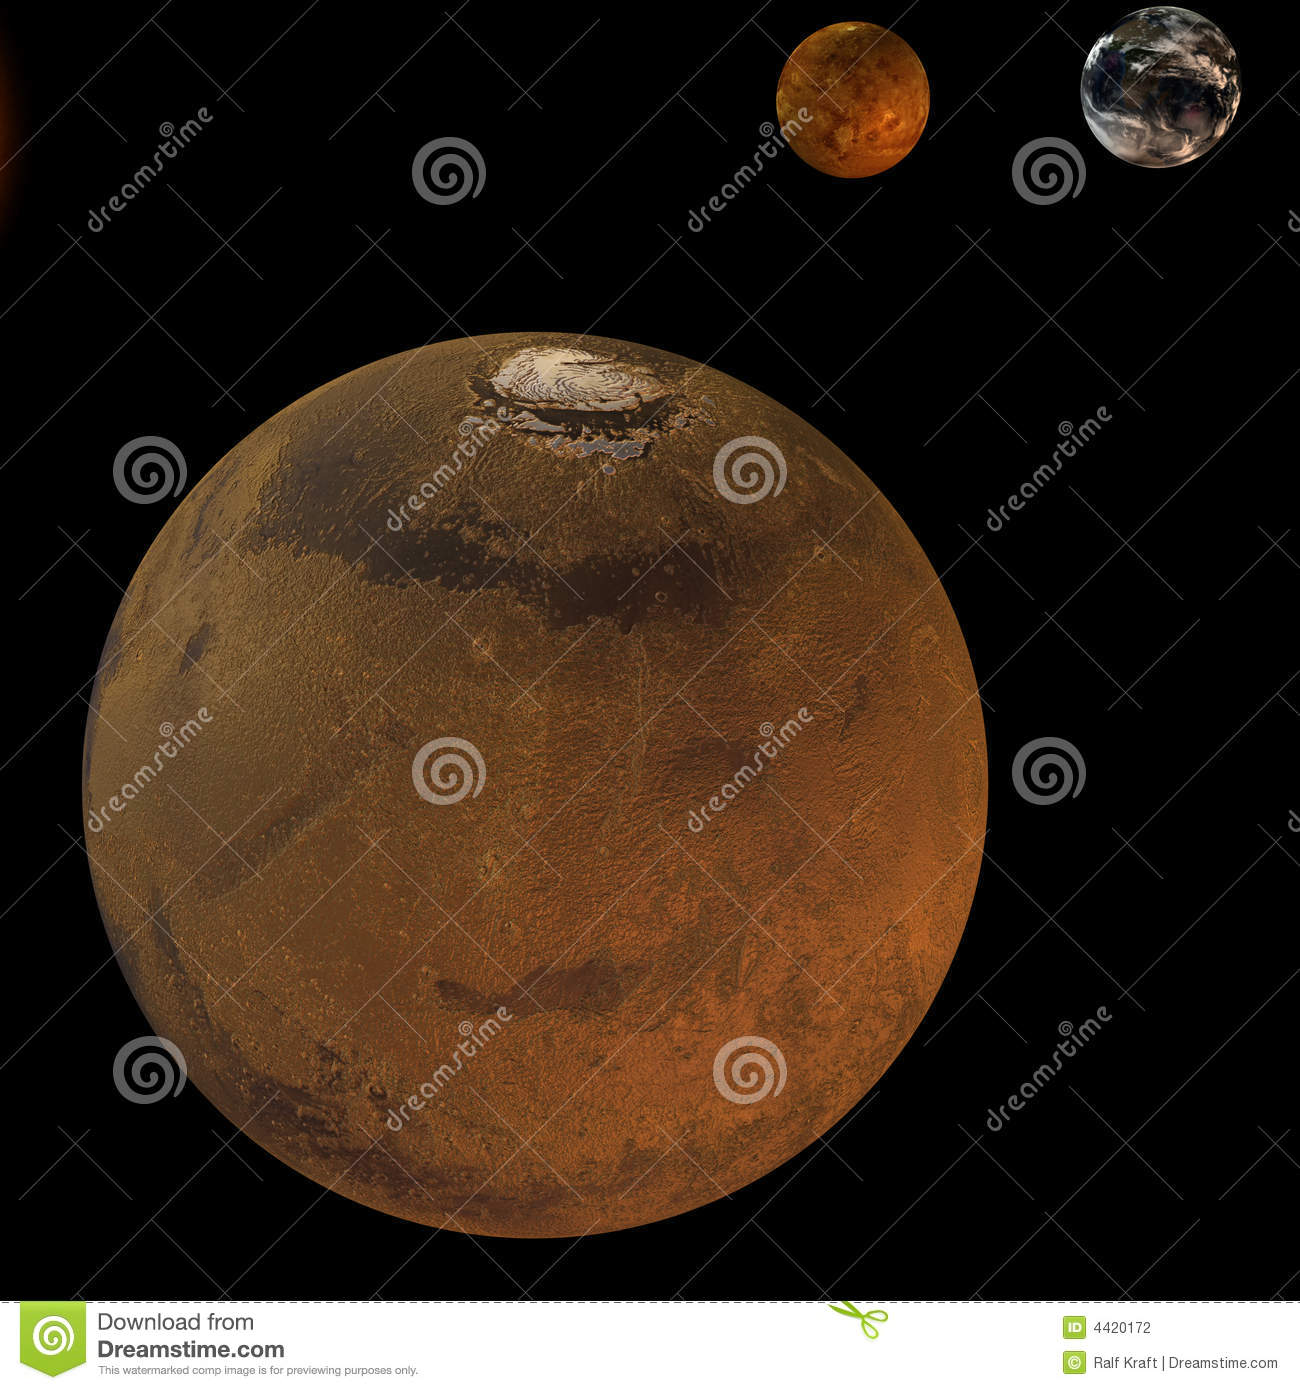 solar system earth and mars - photo #48